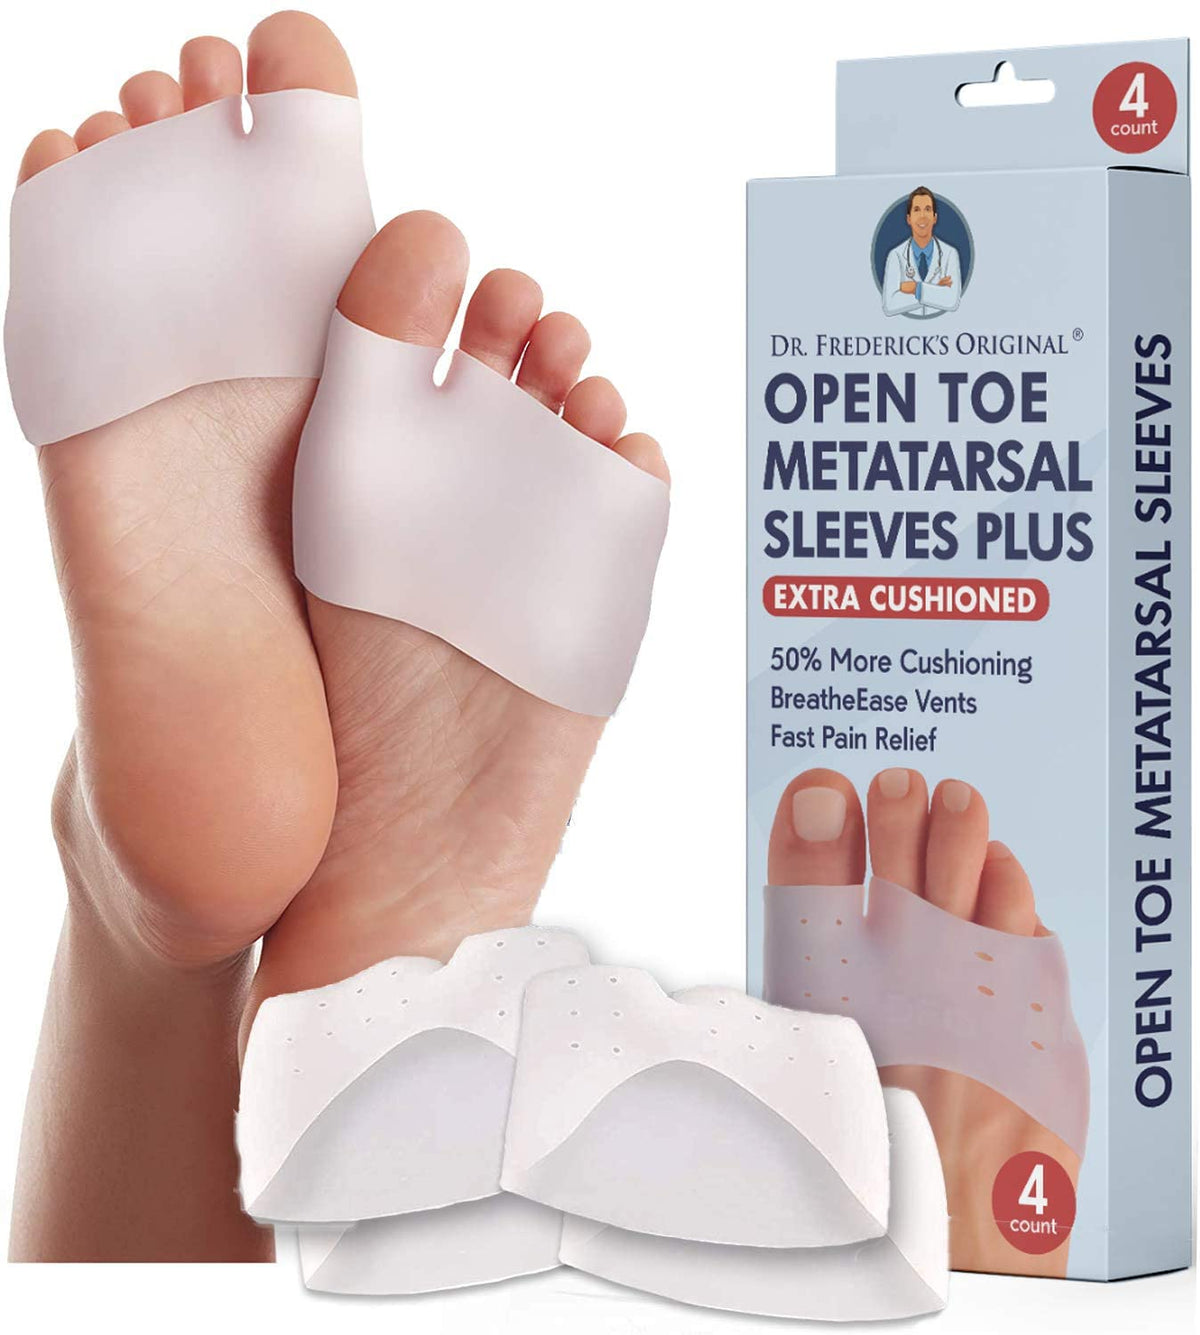 Dr. Frederick's Original Metatarsal Sleeves Plus - 4 Pieces - 50% More Cushioning - Fit Guarantee - Metatarsal Pads for Women & Men Foot Pain Dr. Frederick's Original